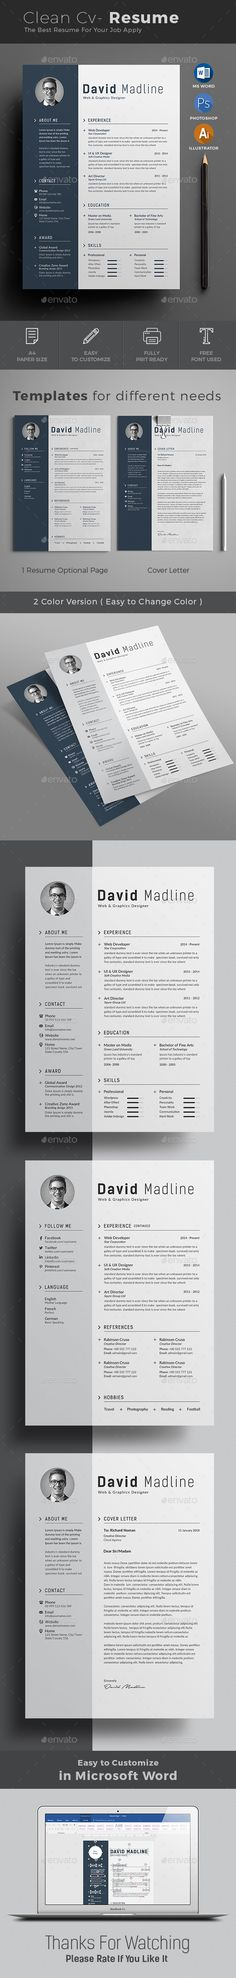 Resume Templates and Resume Examples - Resume Tips